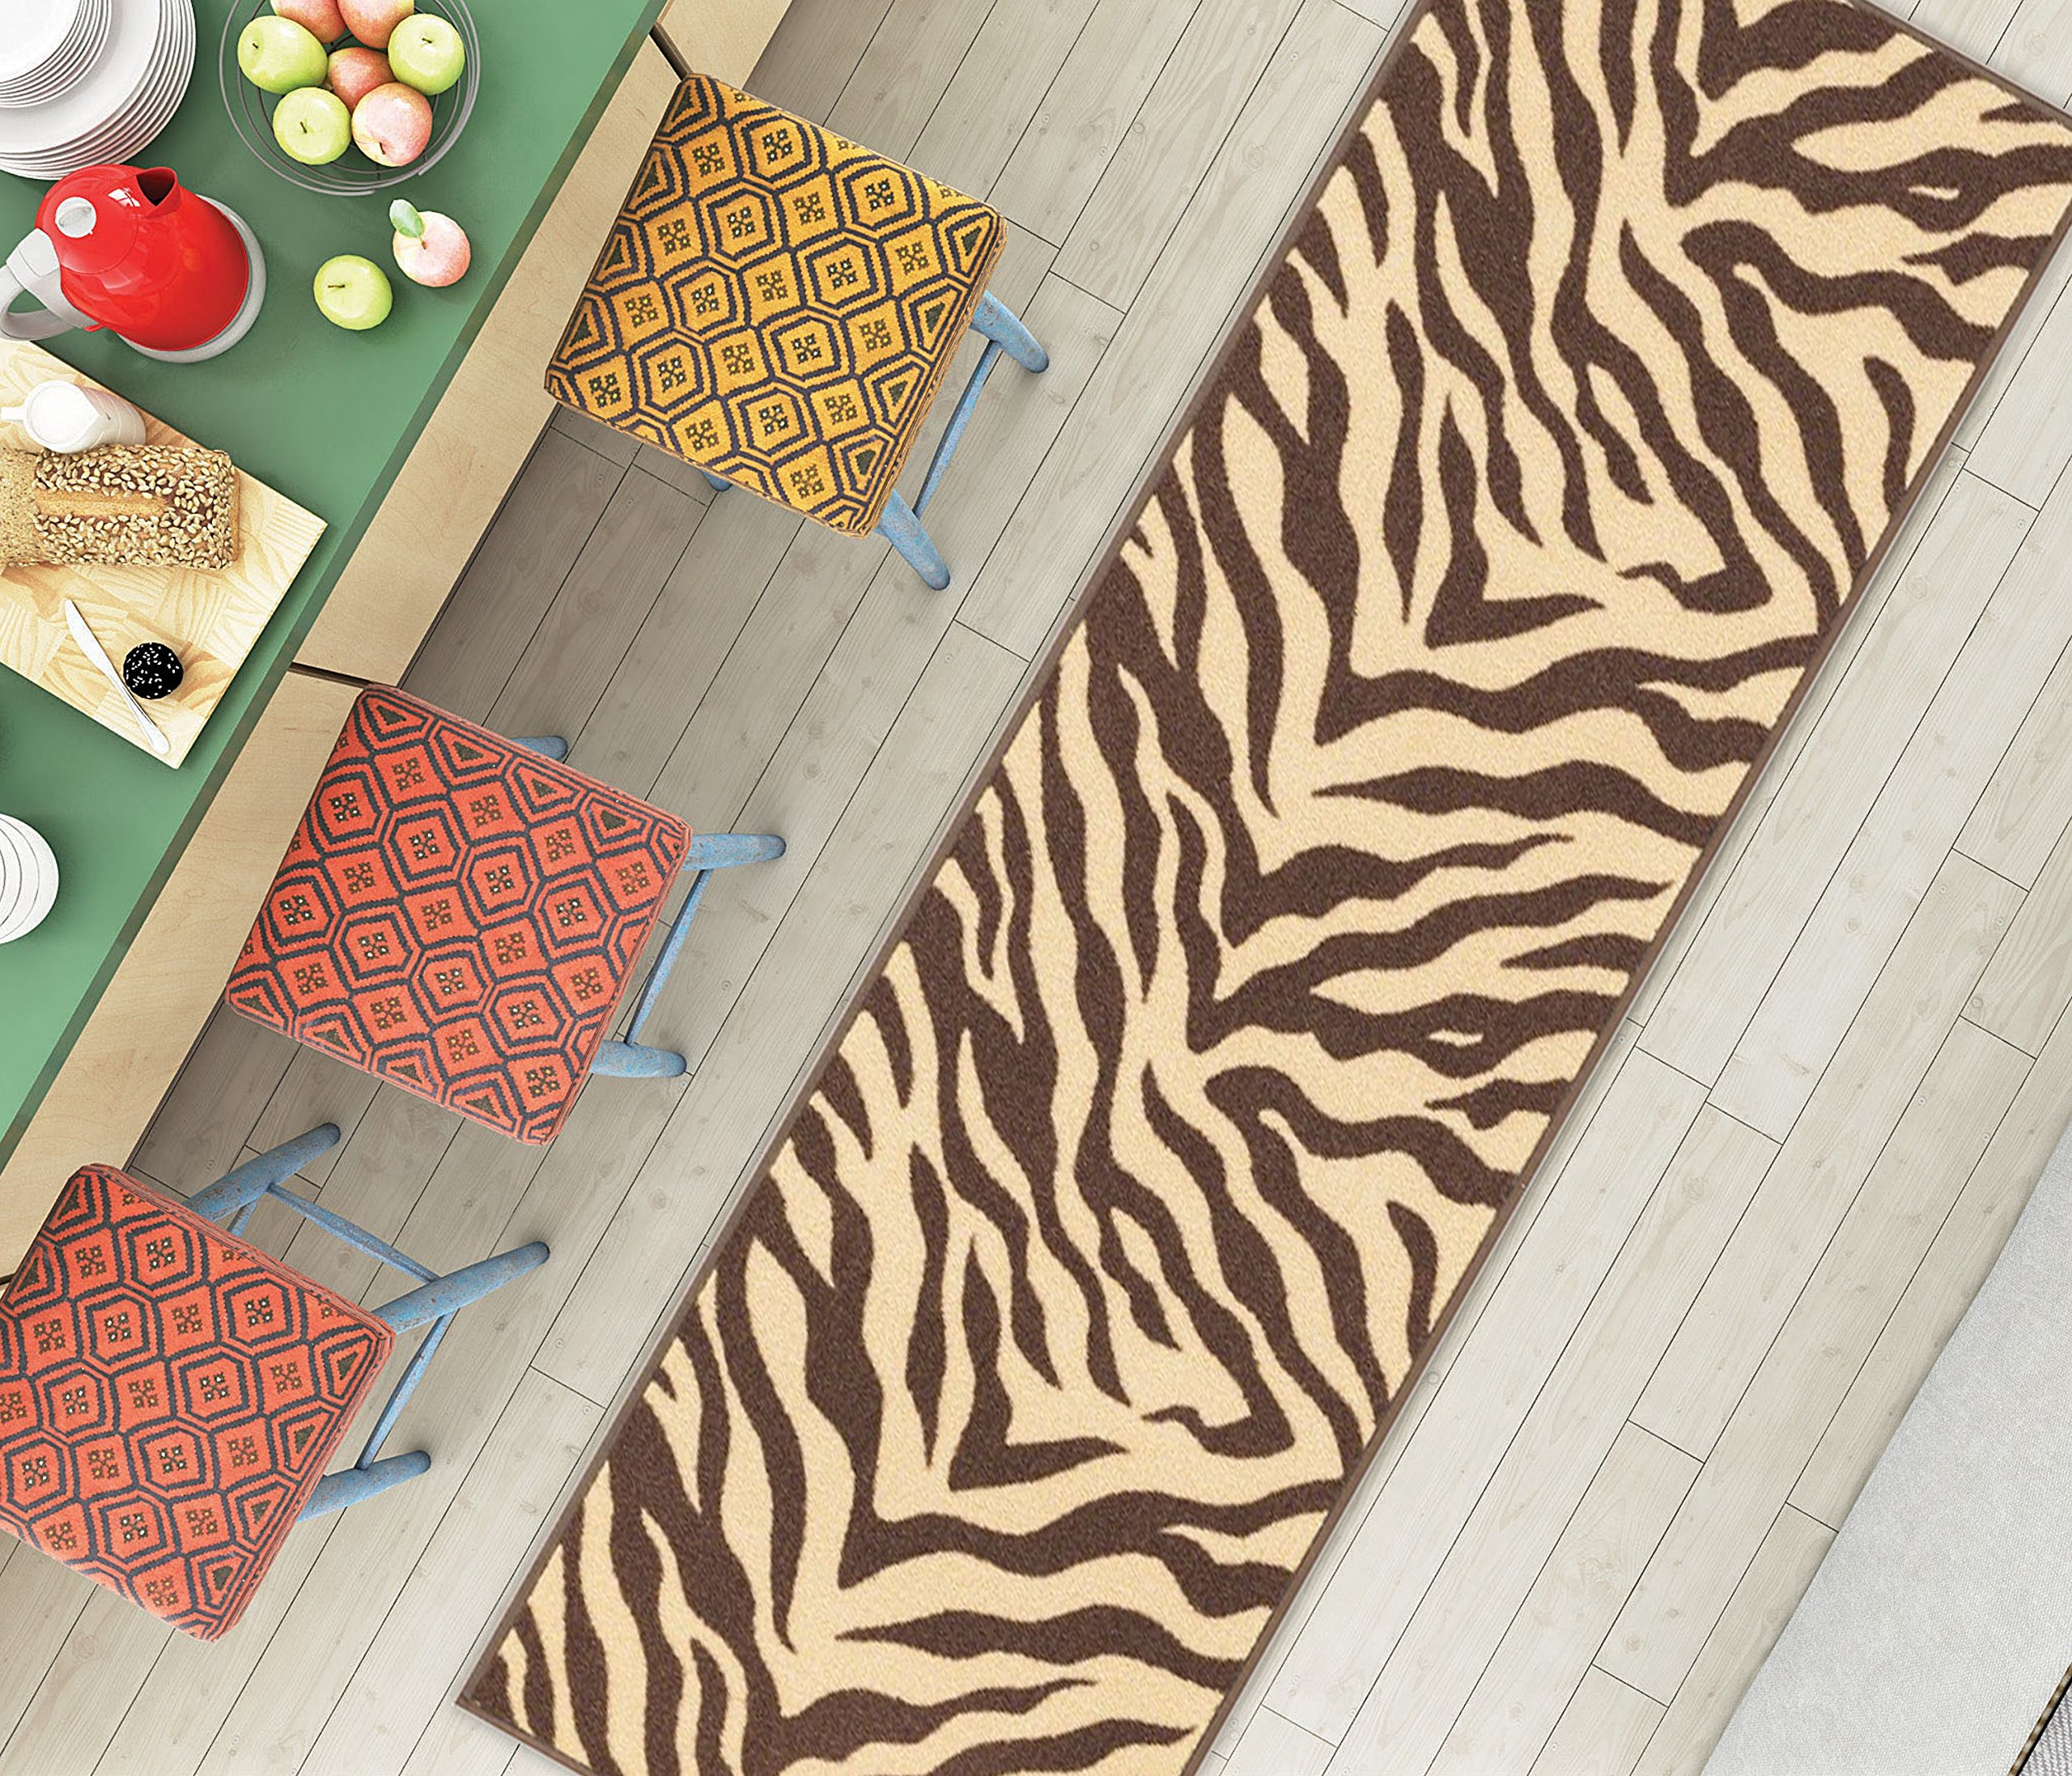 Well Woven Non-Skid Slip Rubber Back Antibacterial 2x5 (1'8'' x 5') Door Mat Runner Rug Brown Zebra Animal Print Stripes Modern Thin Low Pile Machine Washable Indoor Outdoor Kitchen Hallway Entry by Well Woven (Image #3)